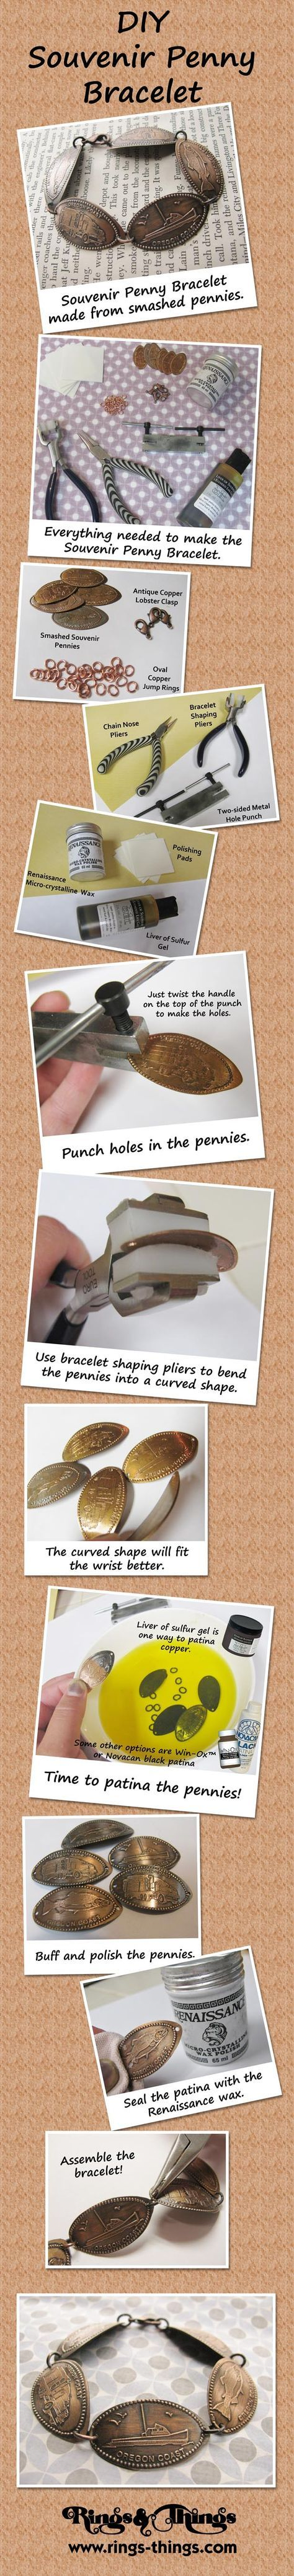 DIY Souvenir Penny Bracelet.  A tutorial from Rings & Things.